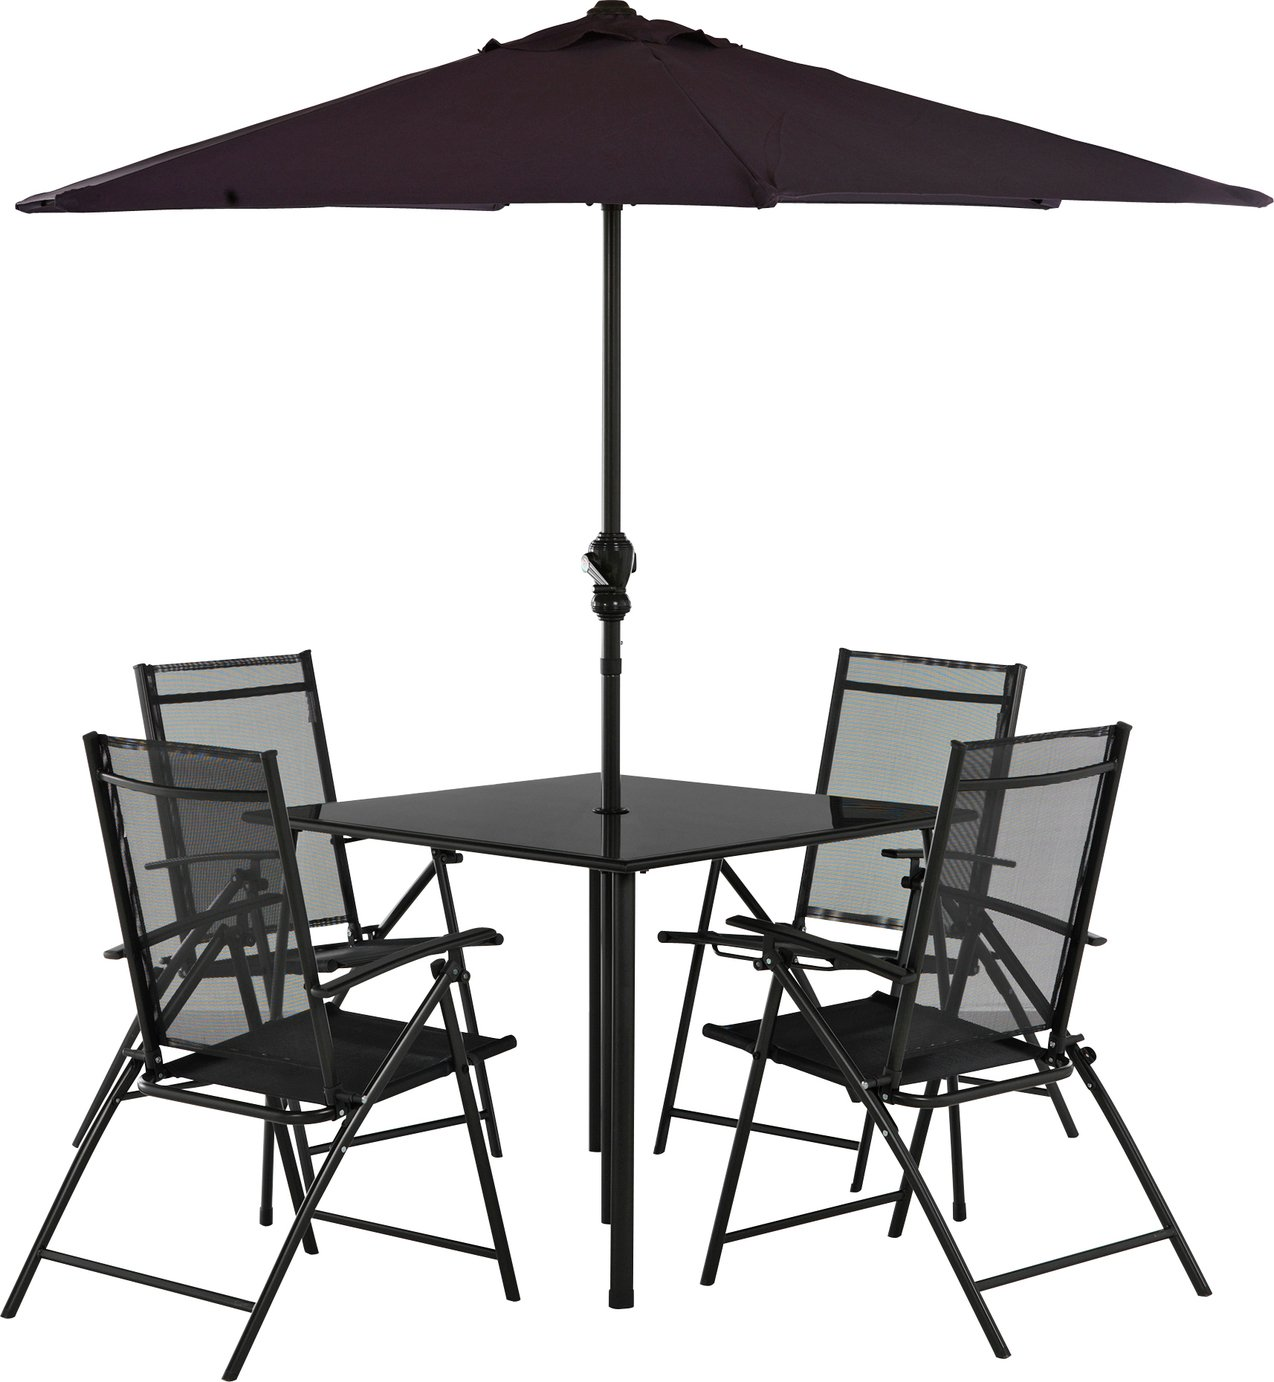 Buy HOME Milan 4 Seater Patio Set At Argos.co.uk   Your Online Shop For  Garden Table And Chair Sets, Garden Furniture, Home And Garden.